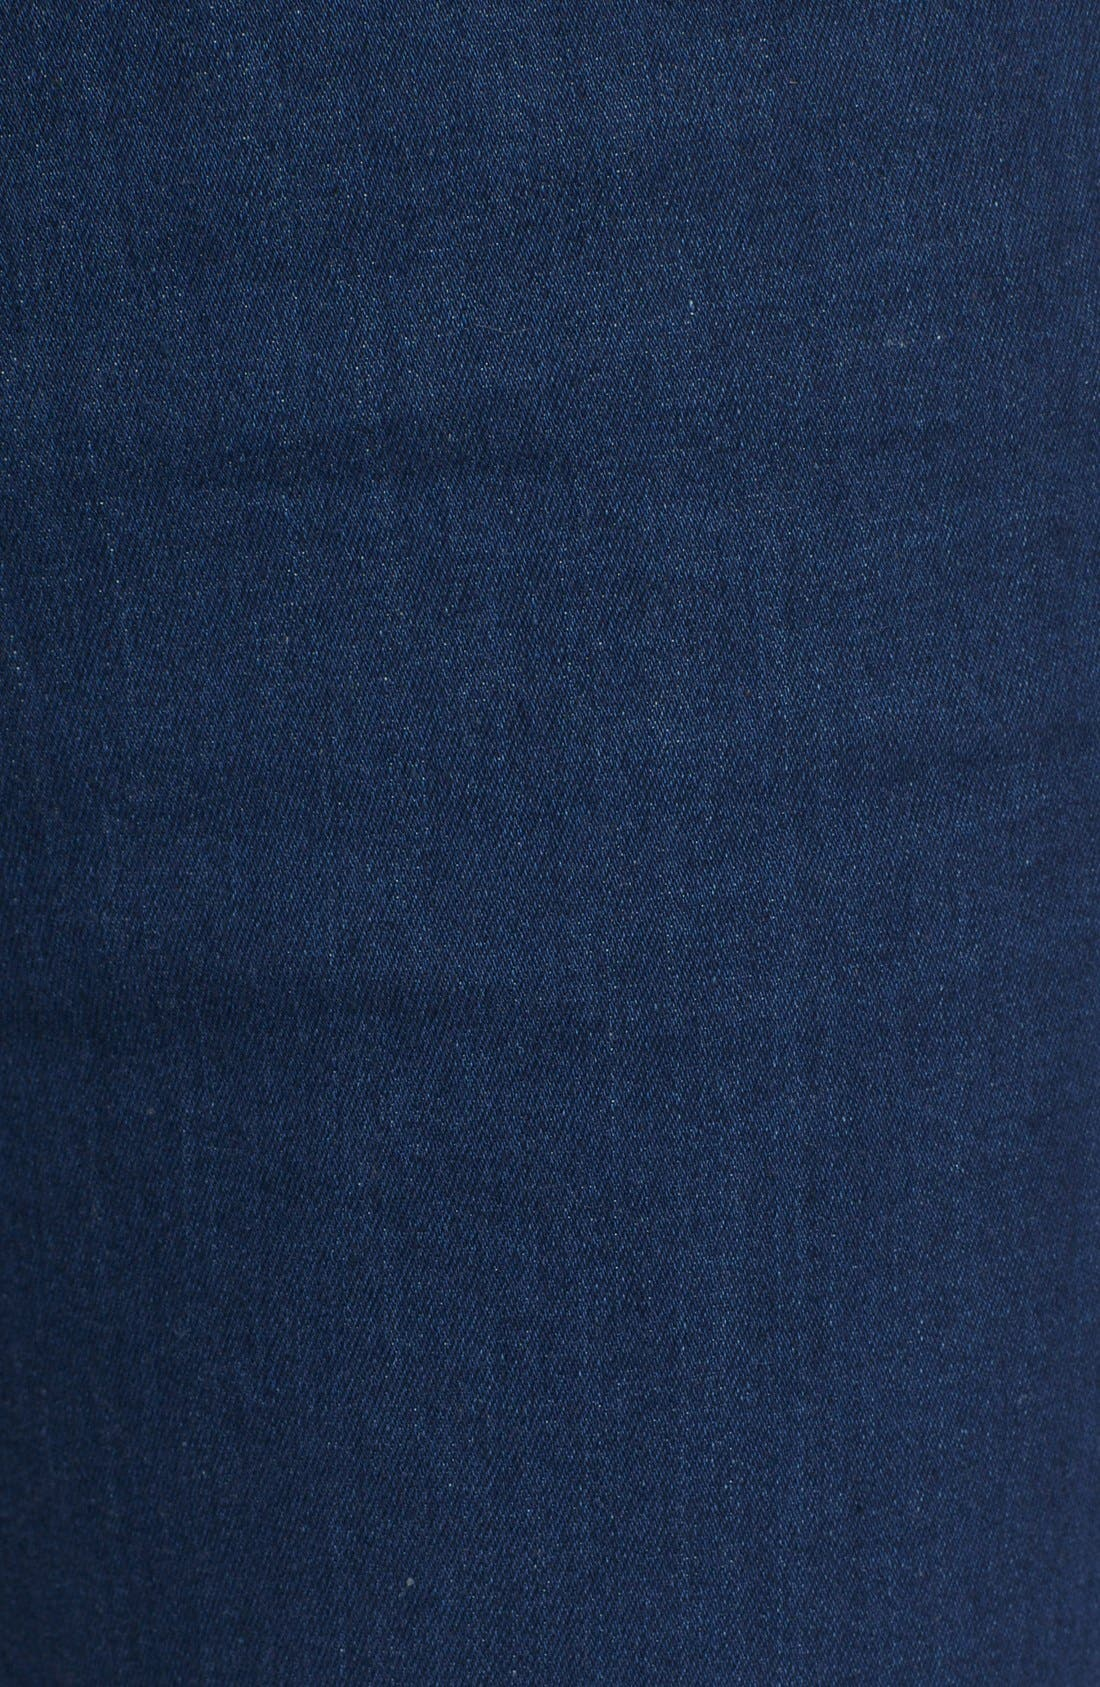 'The Skinny' Stretch Jeans,                             Alternate thumbnail 5, color,                             400